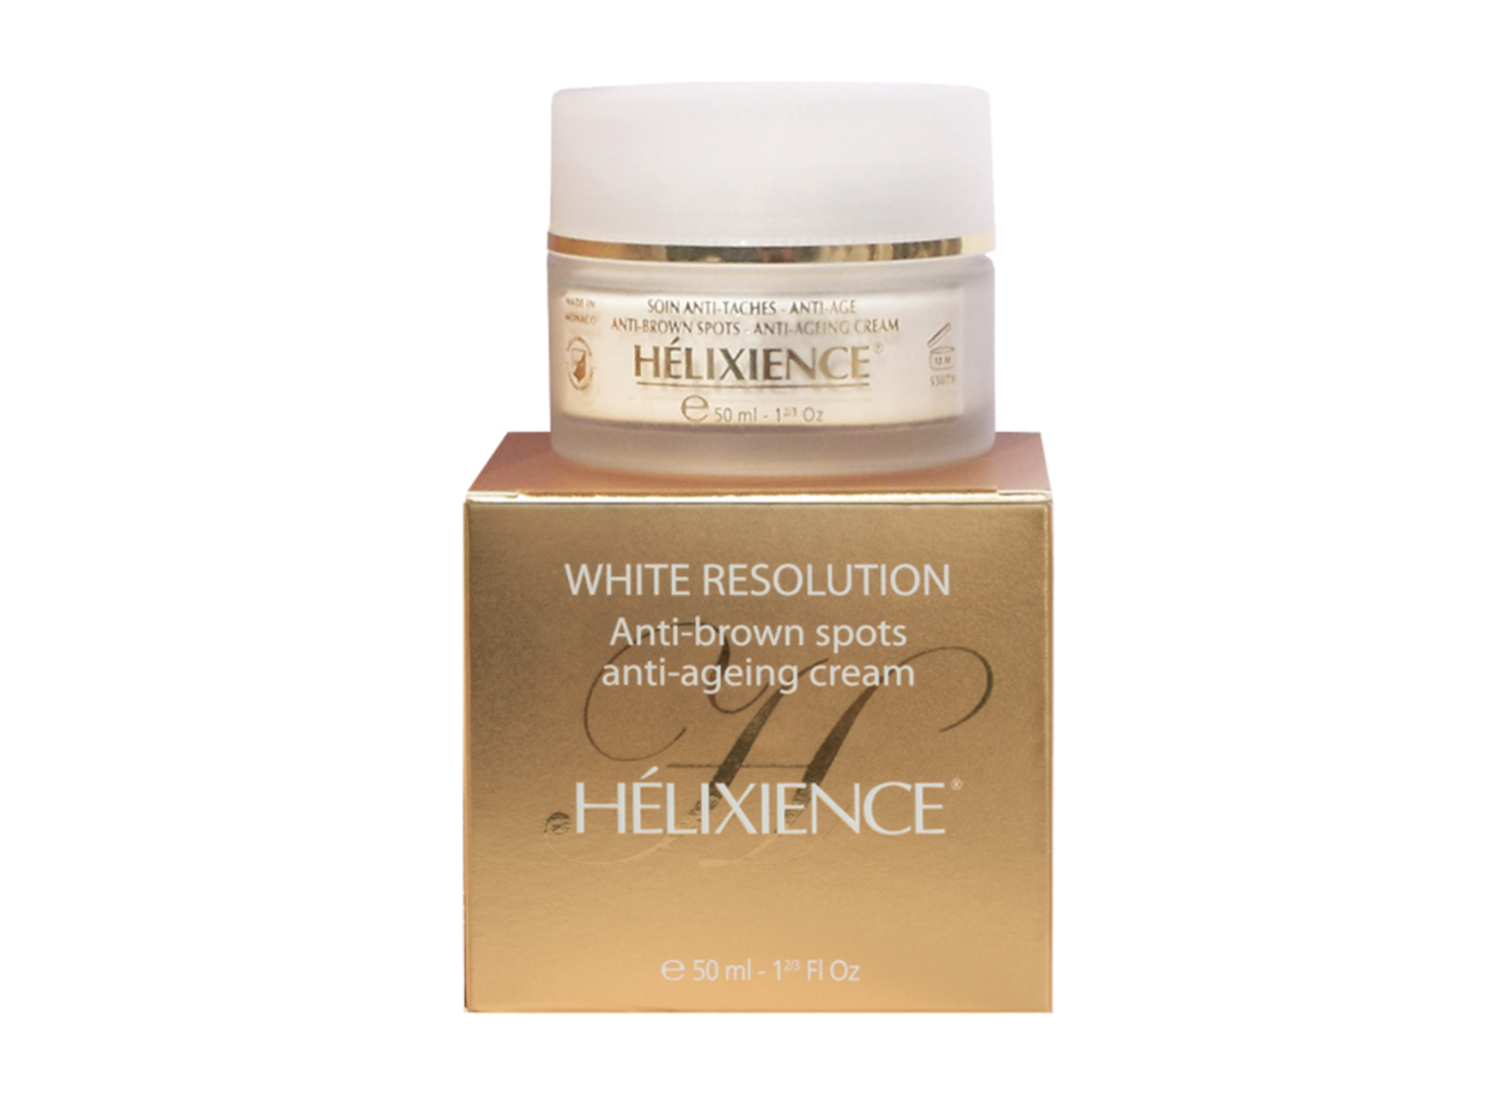 Helixience anti aceing cream - 50 ml.